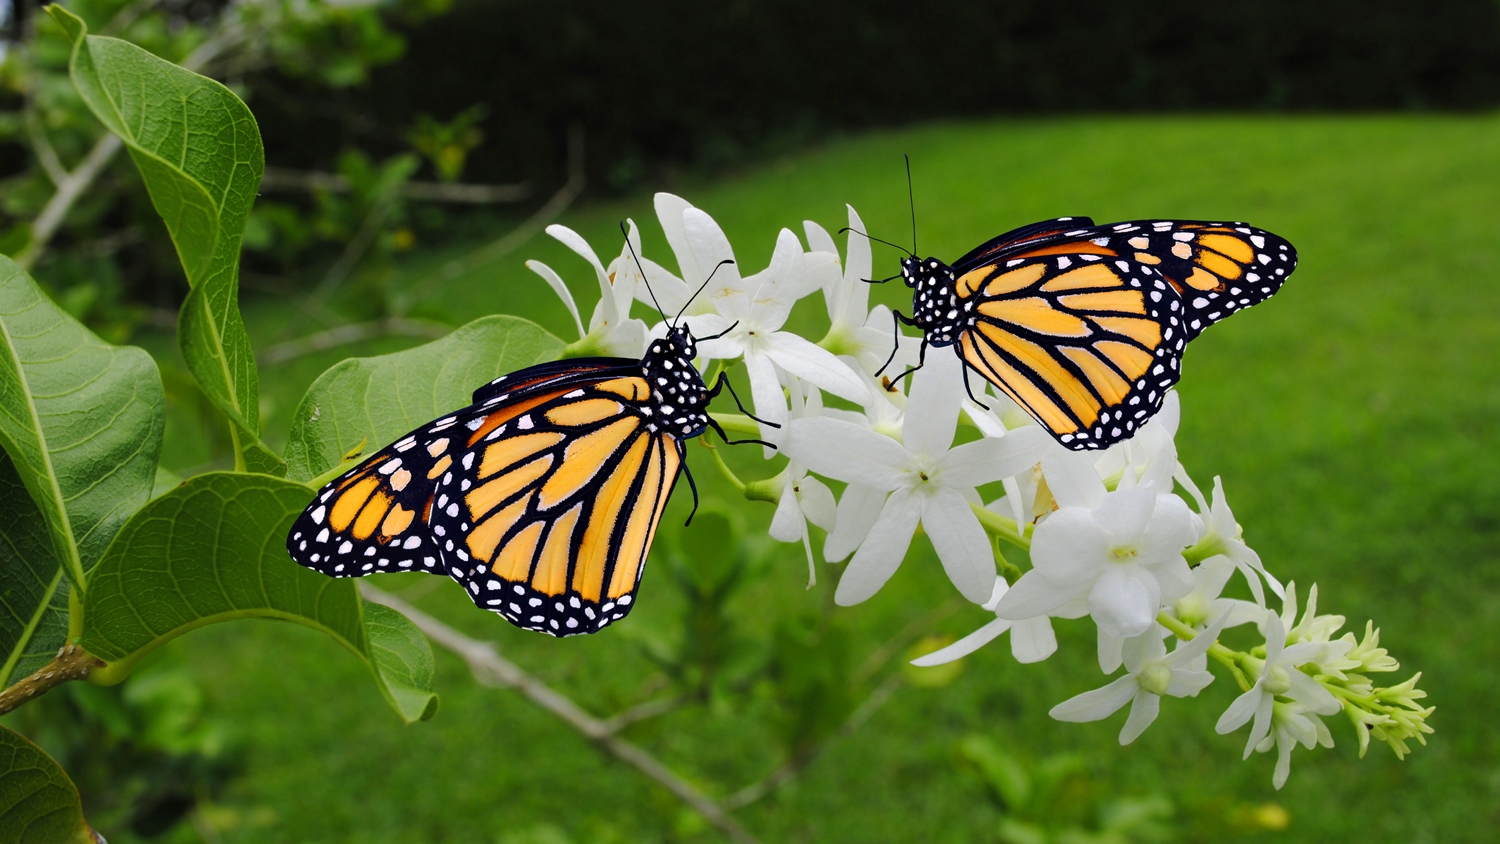 Two butterflies on flowers